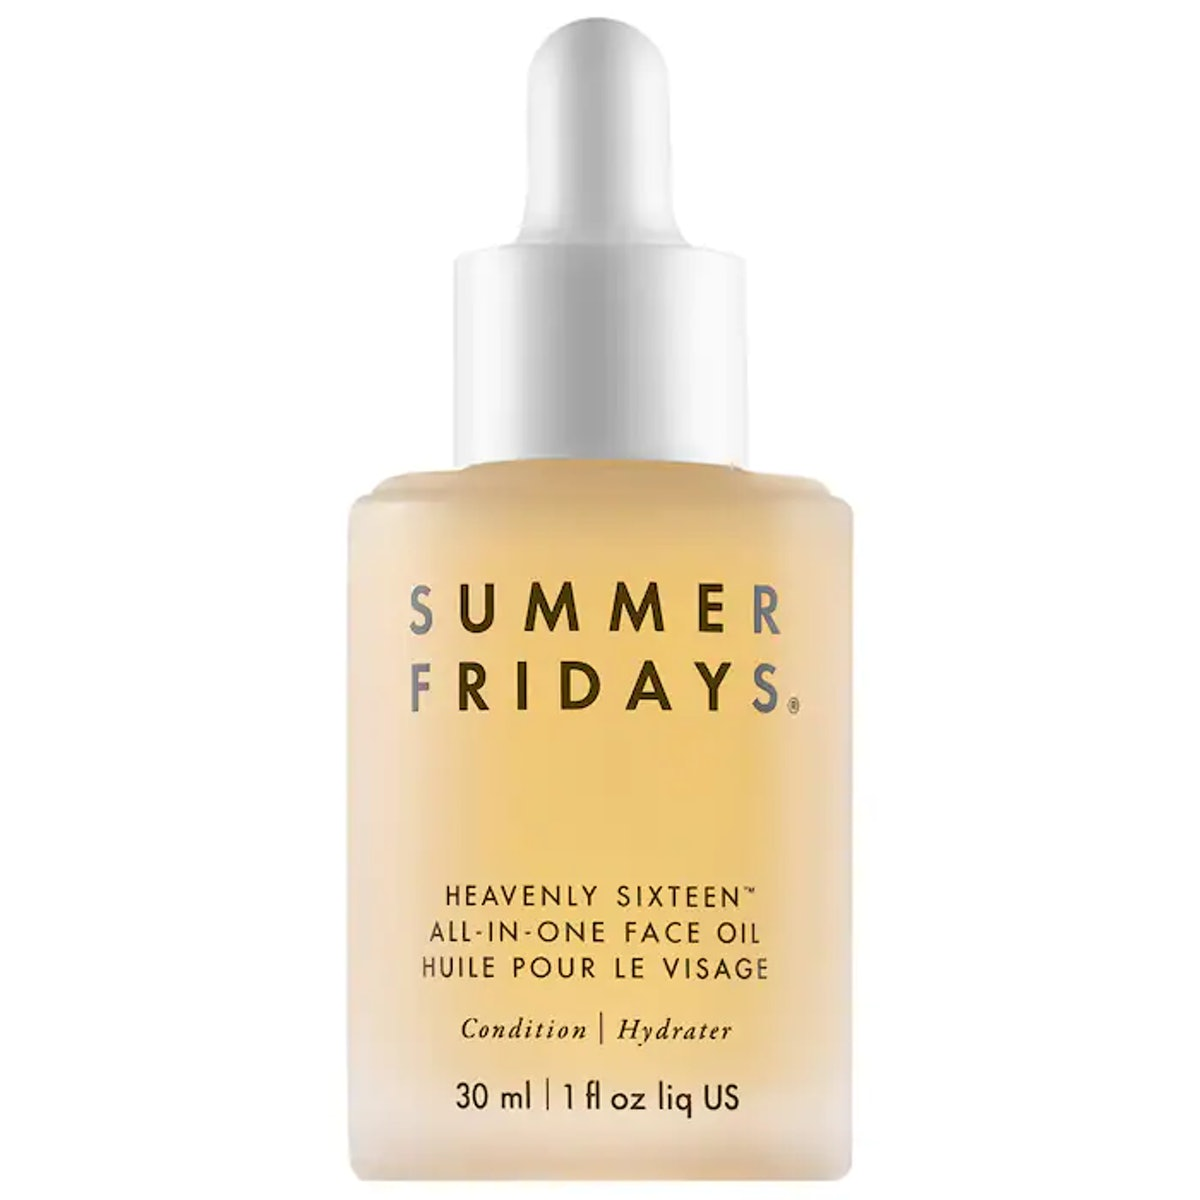 Heavenly Sixteen All-In-One Face Oil